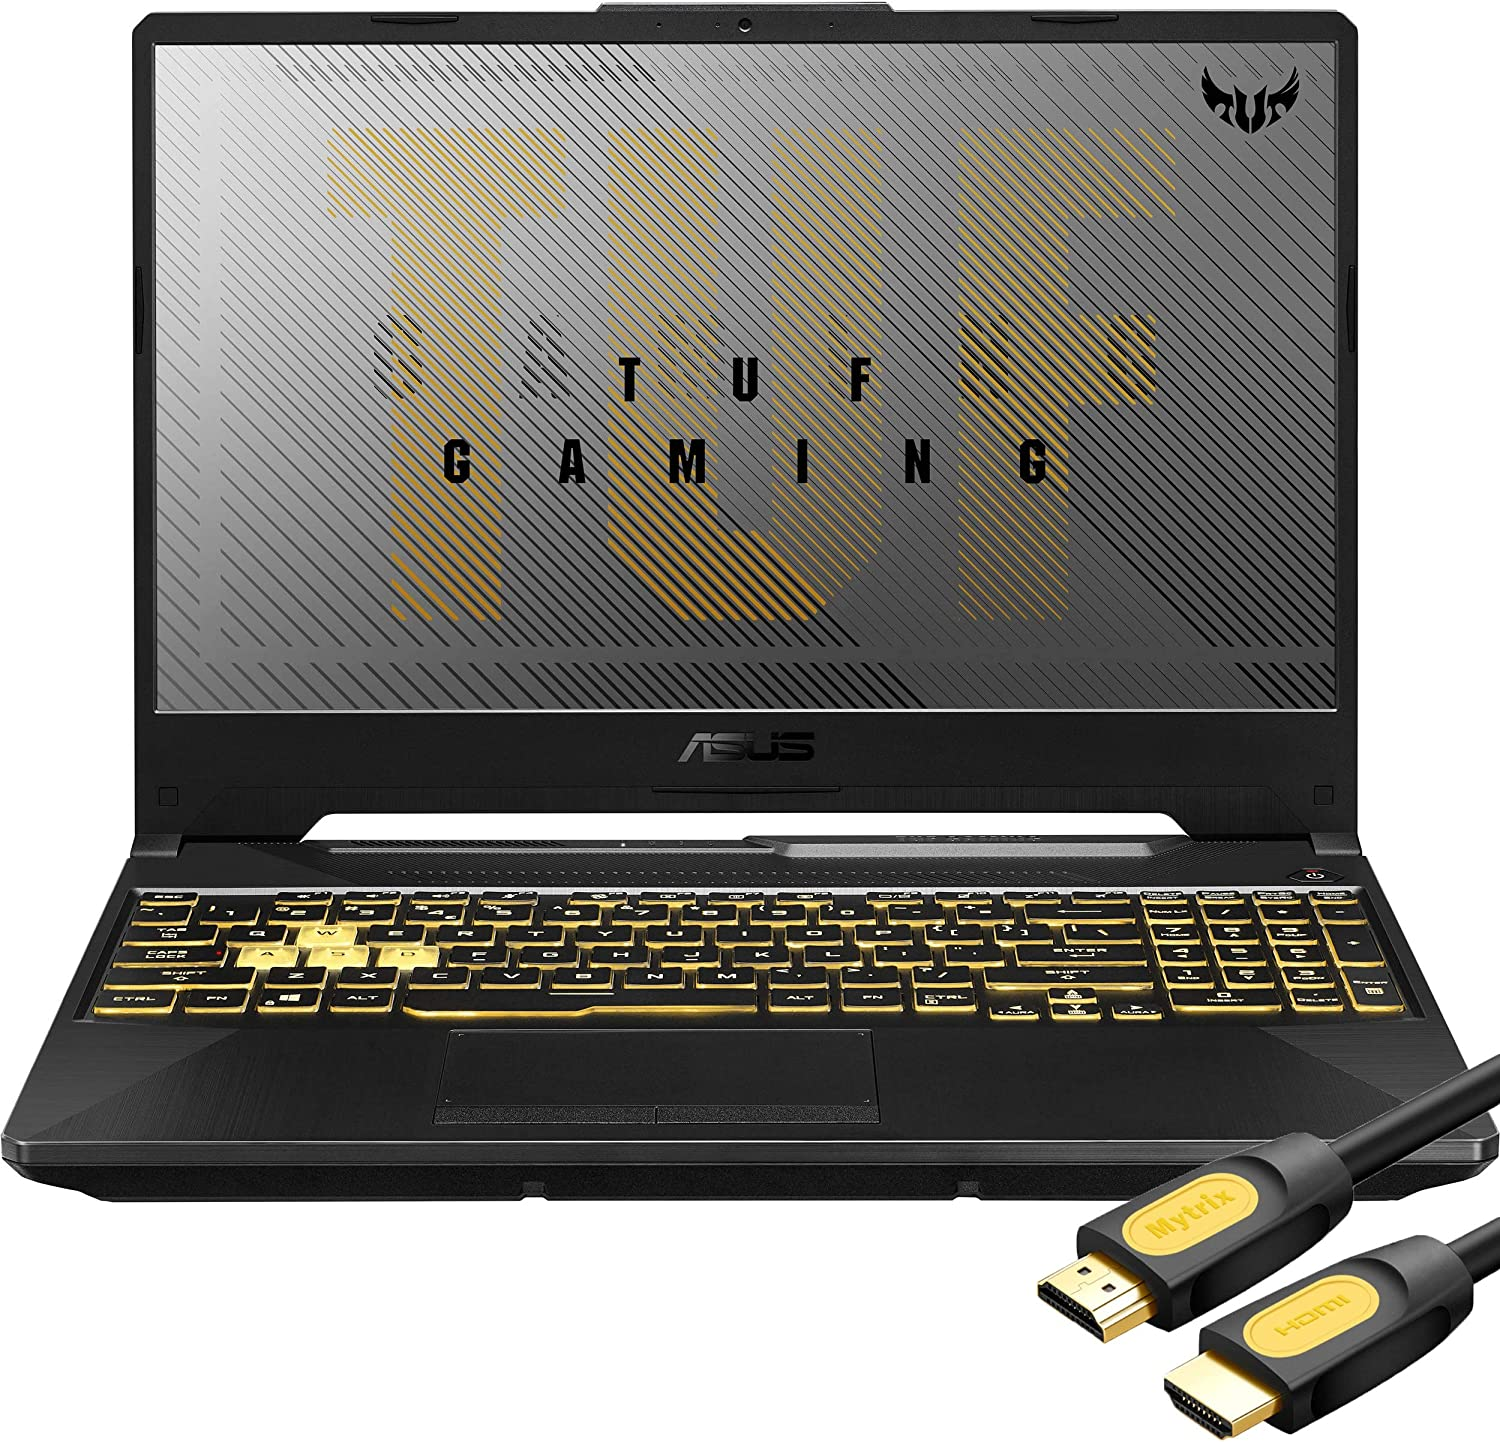 "ASUS TUF Gaming VR Ready Laptop, 15.6"" IPS FHD, AMD Ryzen 7 4800H 8-Core up to 4.20 GHz, NVIDIA RTX 2060, 32GB RAM, 512GB SSD+2TB SSHD, RGB KB, RJ-45 LAN, Mytrix HDMI 2.0 Cable, Win 10"